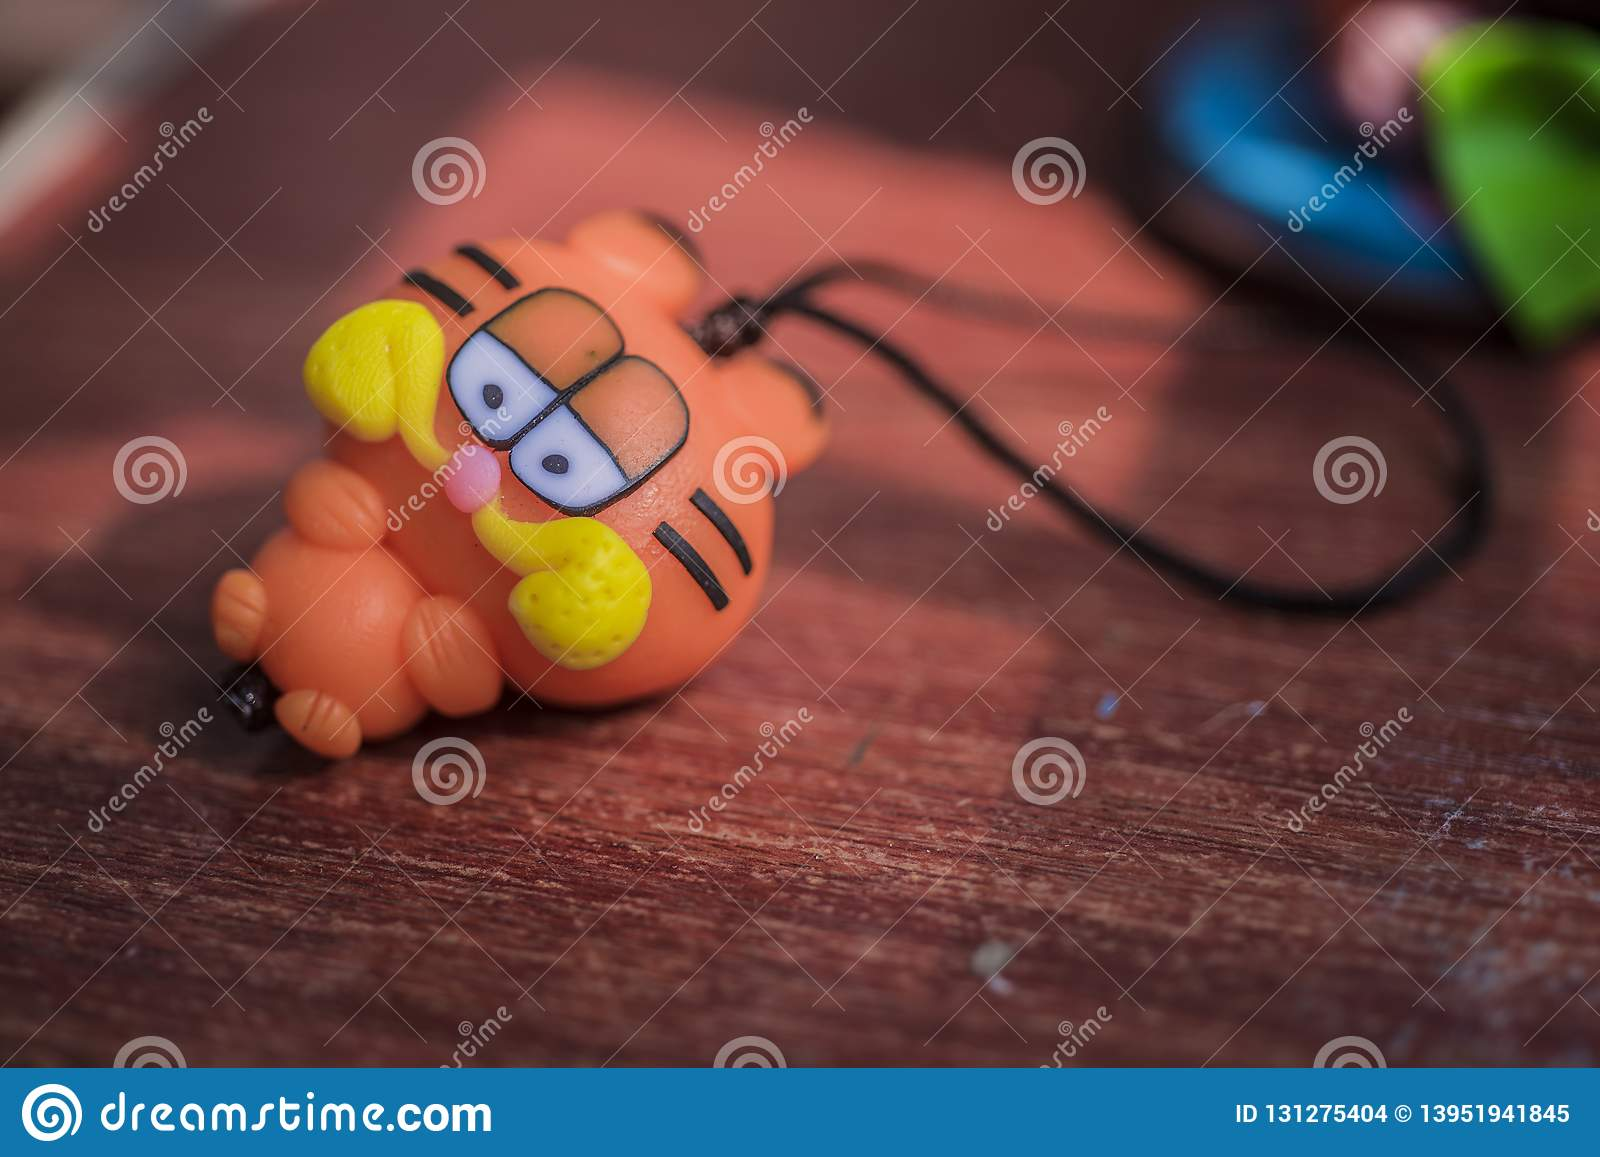 Clay plastic Garfield, small toys, small crafts placed on orange-red wooden boards